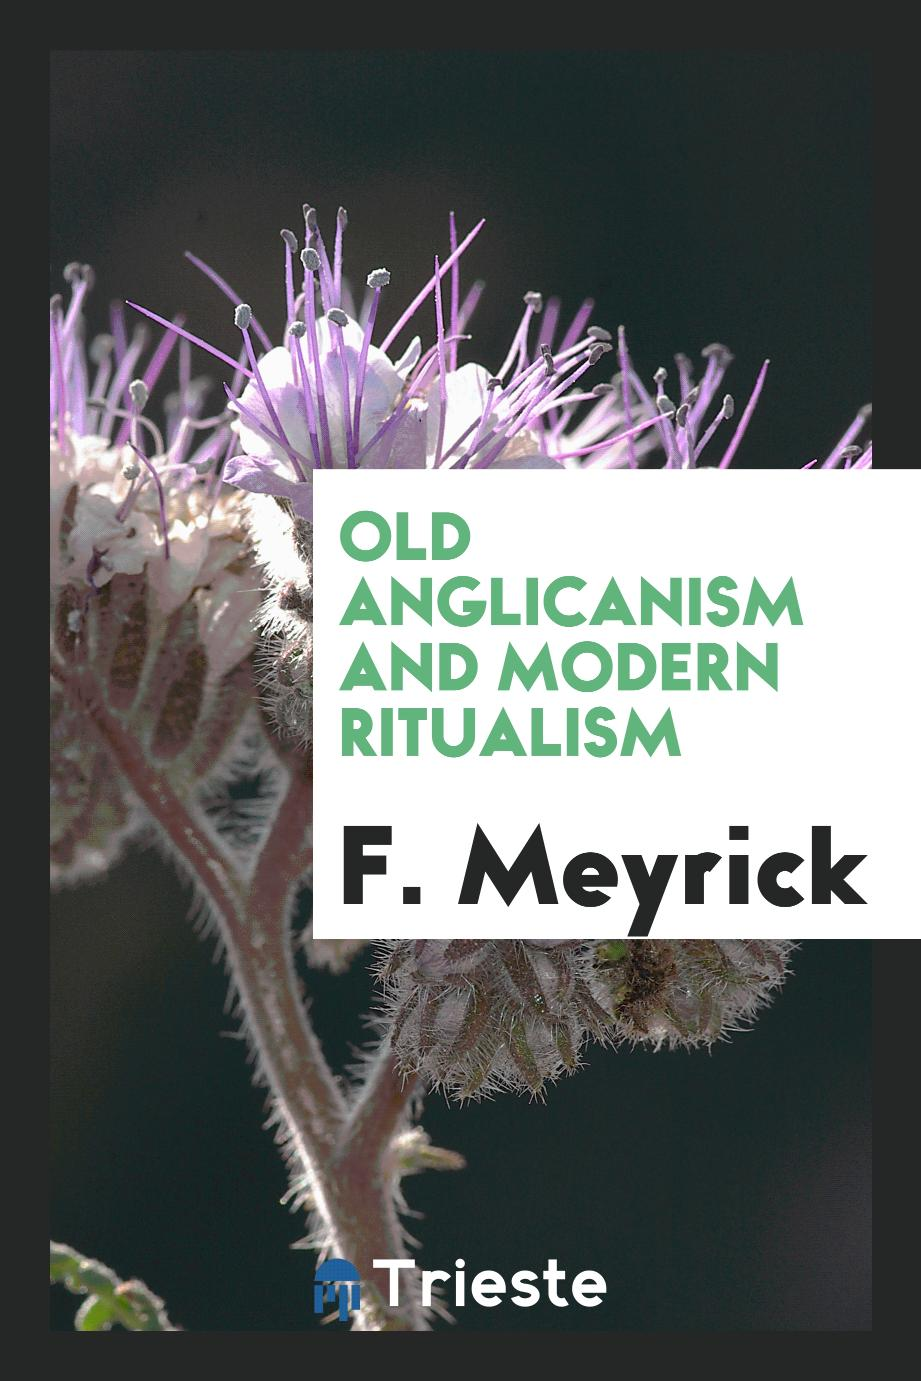 Old Anglicanism and modern ritualism